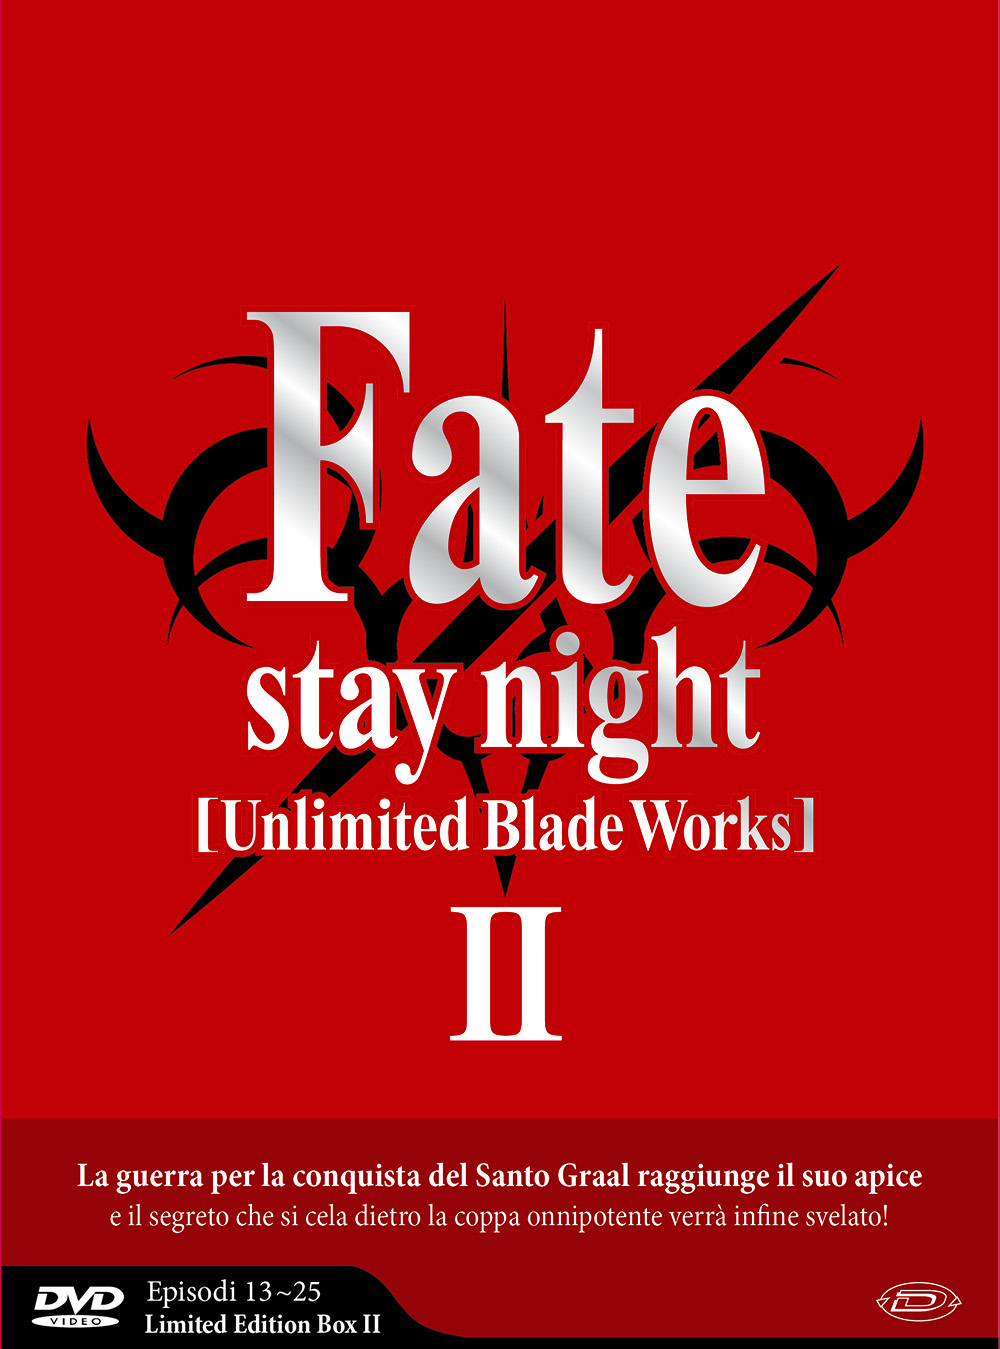 COF.FATE/STAY NIGHT - UNLIMITED BLADE WORKS - STAGIONE 02 (EPS 13-25) (3 DVD) (LIMITED EDITION BOX) (DVD)